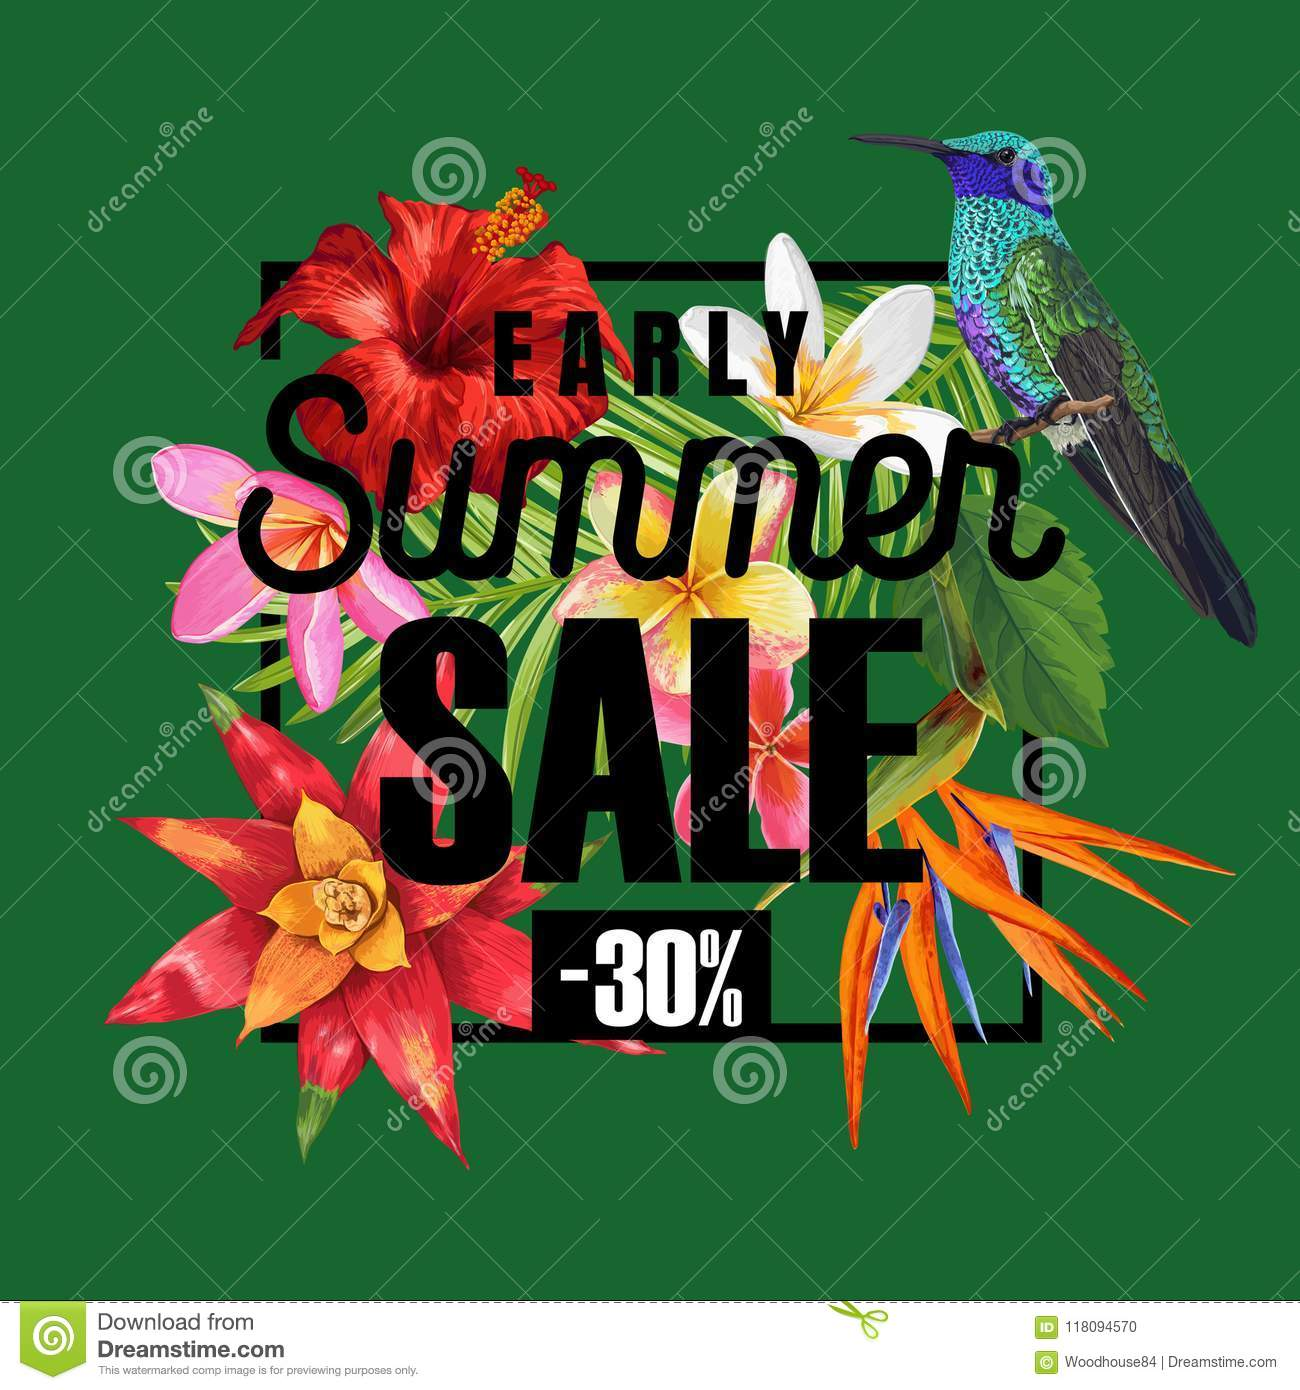 Summer sale banner with tropical hibiscus flowers and humming birds summer sale banner with tropical hibiscus flowers and humming birds floral template for promo discount flyer voucher advertising vector illustration izmirmasajfo